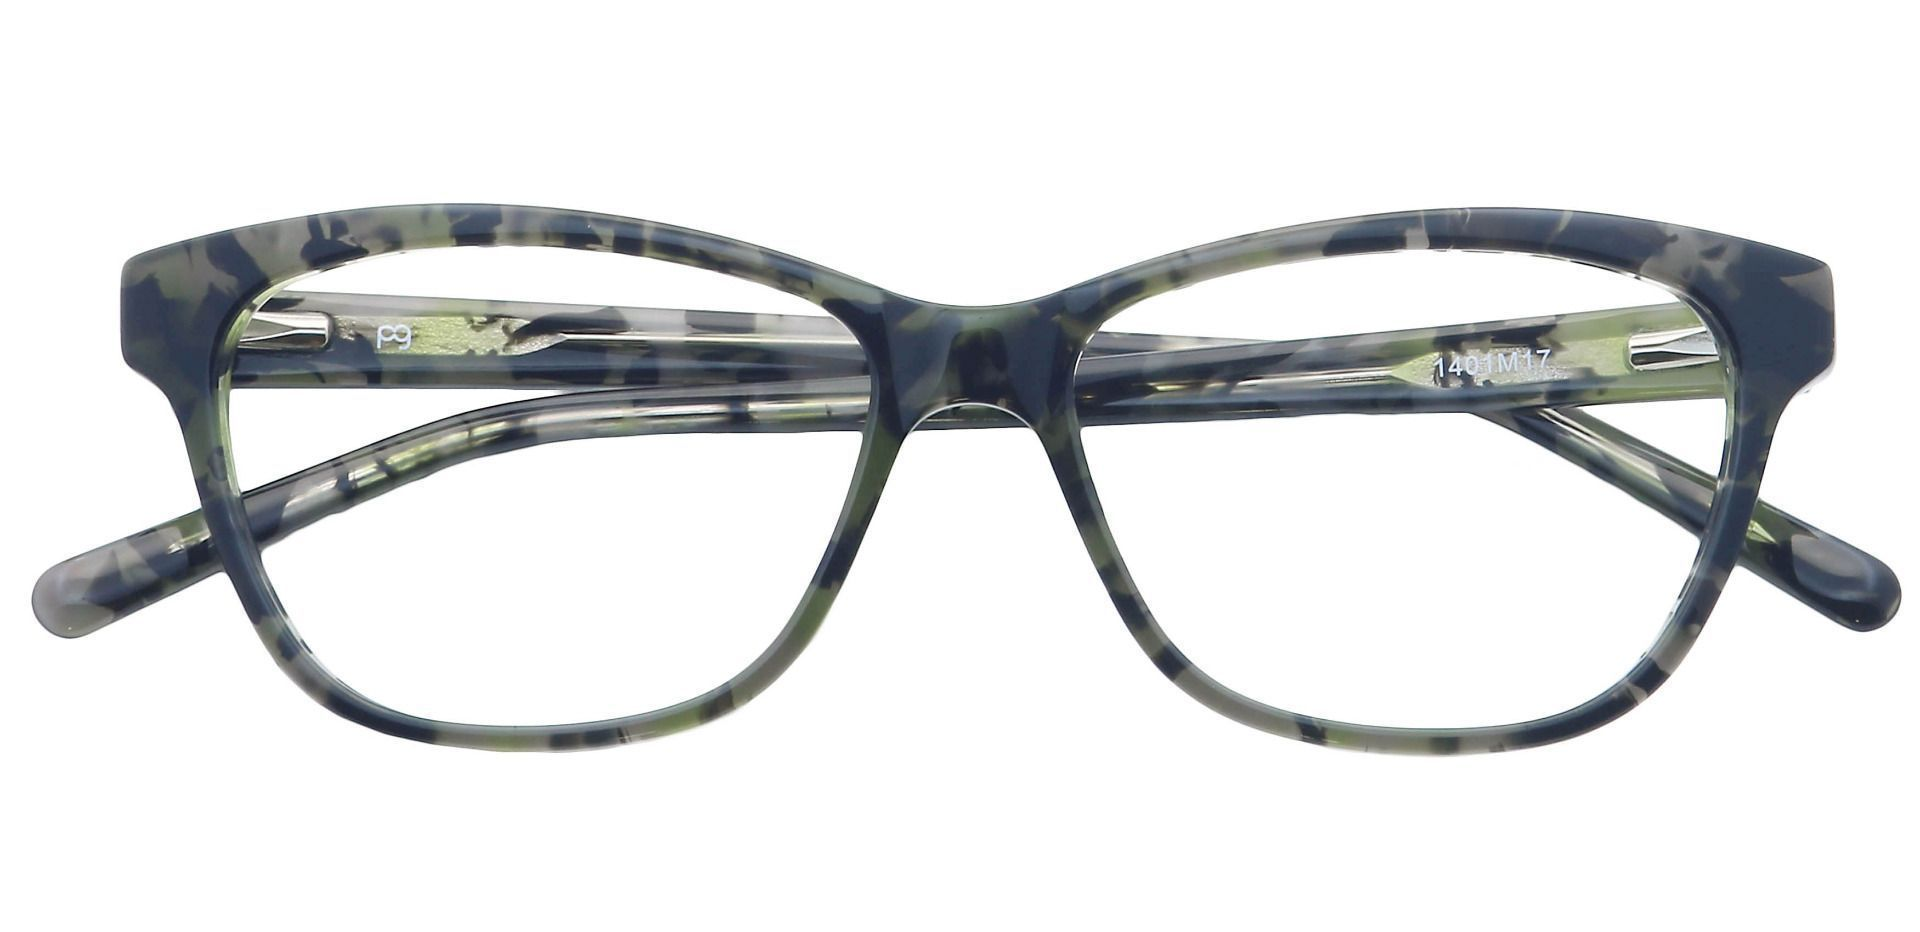 Verve Cat-eye Eyeglasses Frame - Two